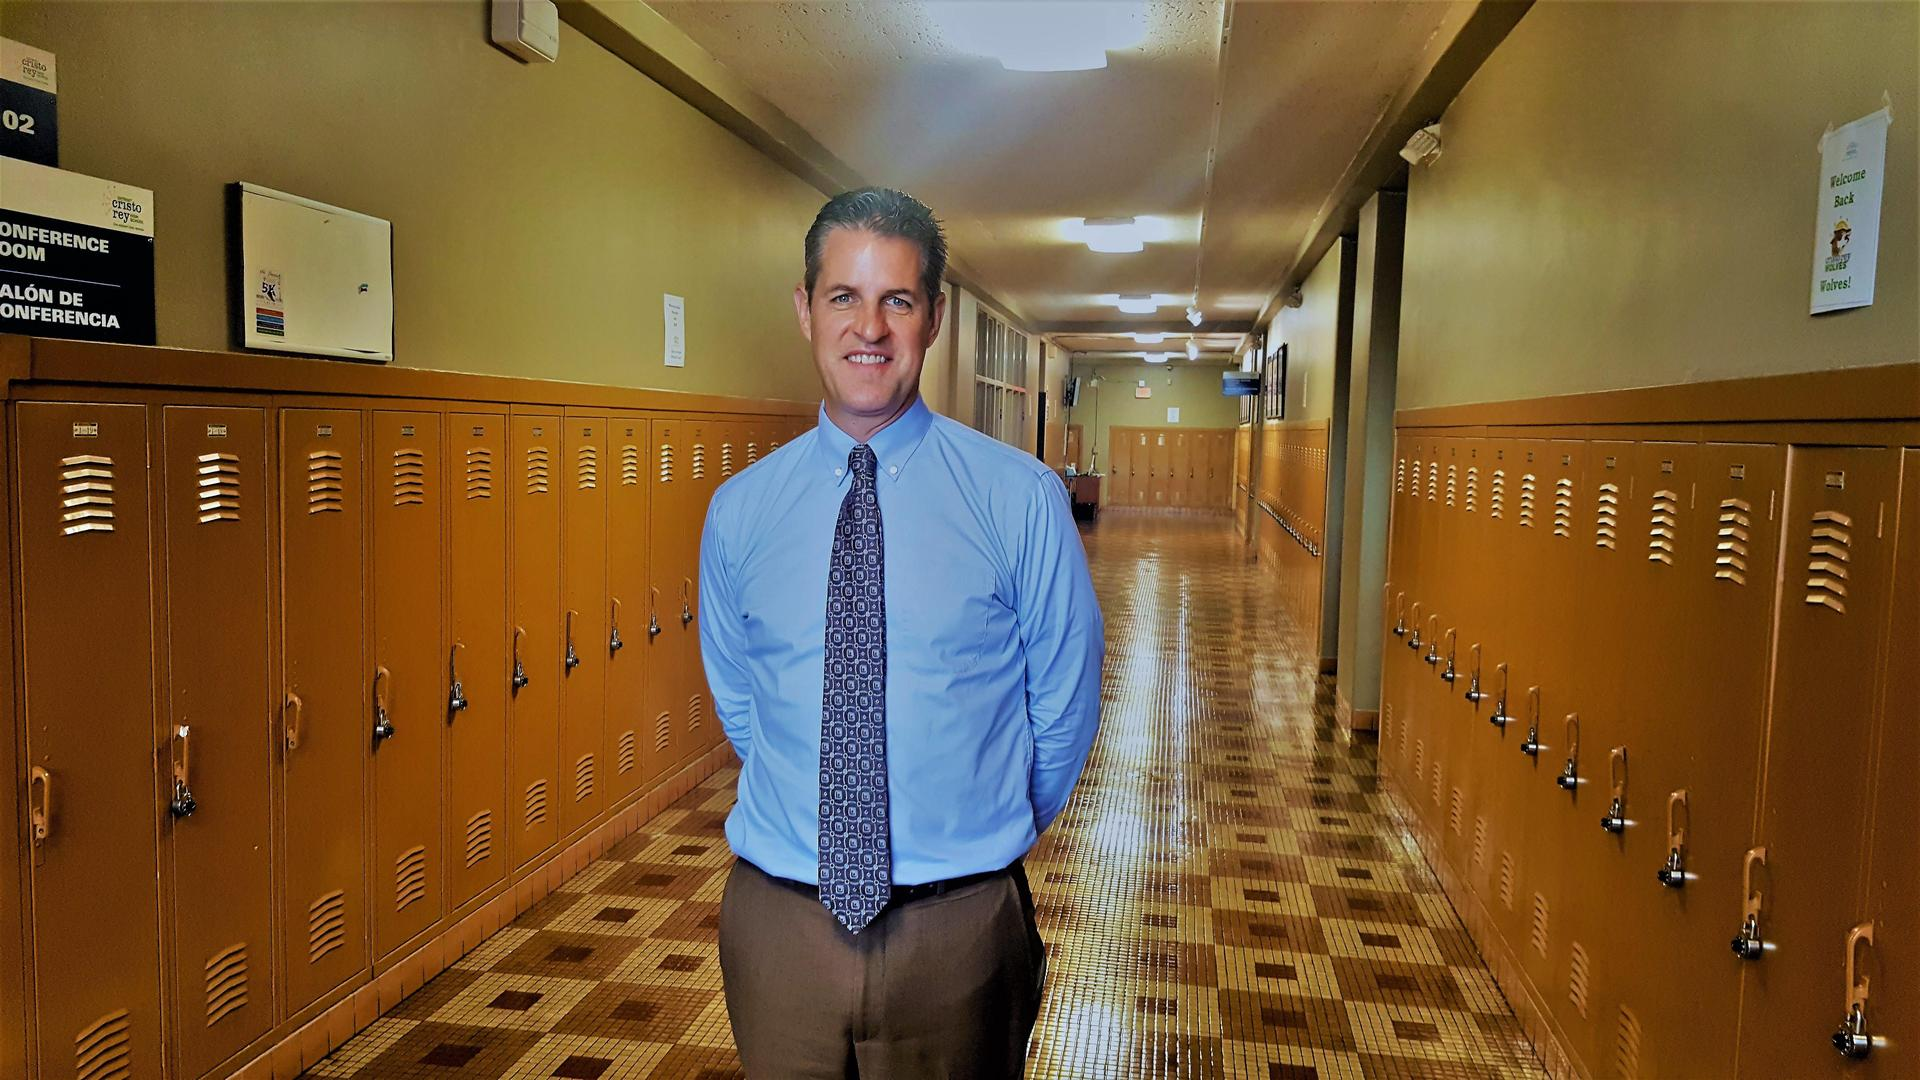 Principal, Kevin Cummings